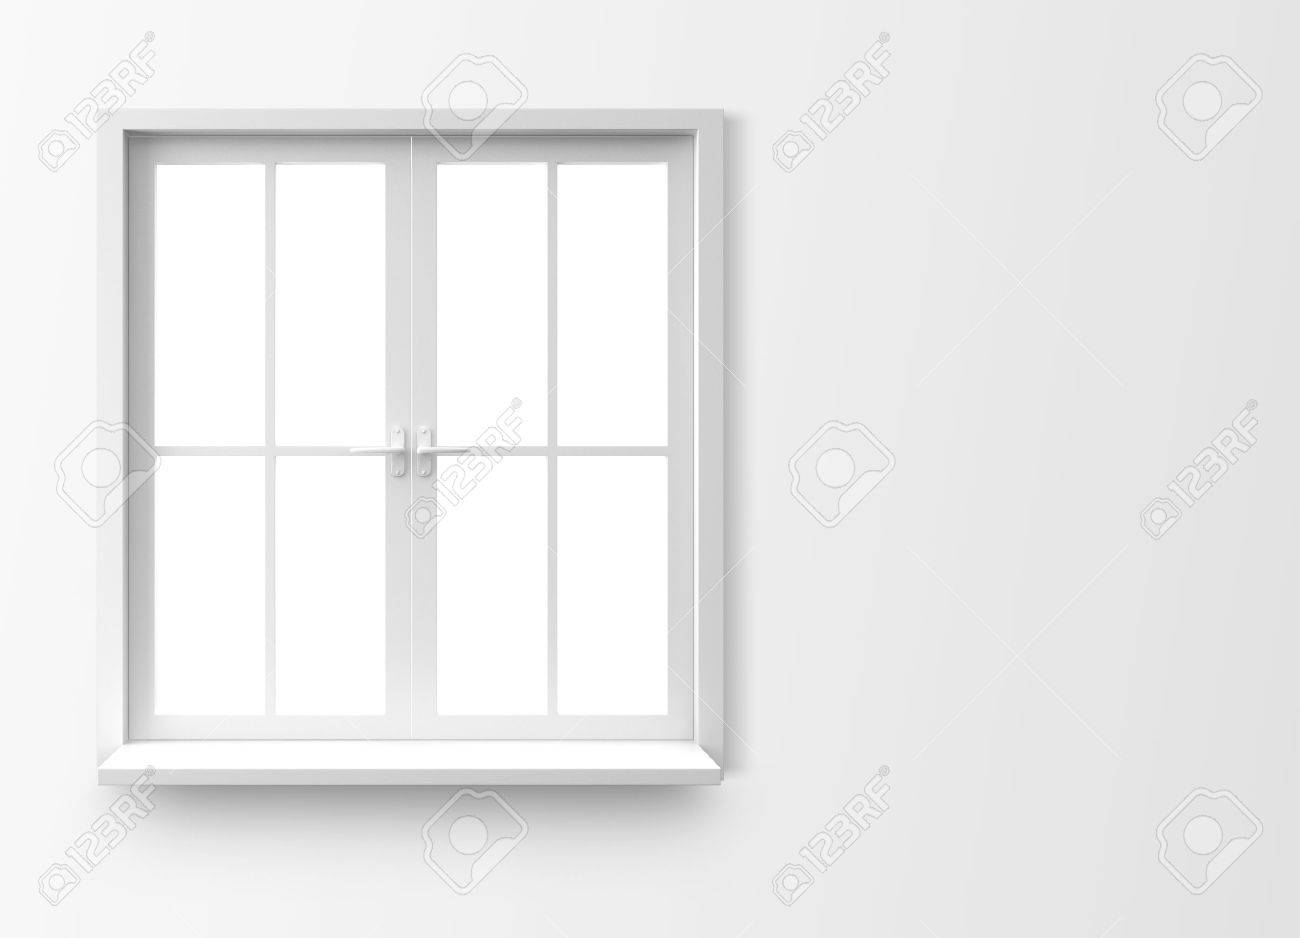 White window frame - Stock Photo Window Isolated On White Background